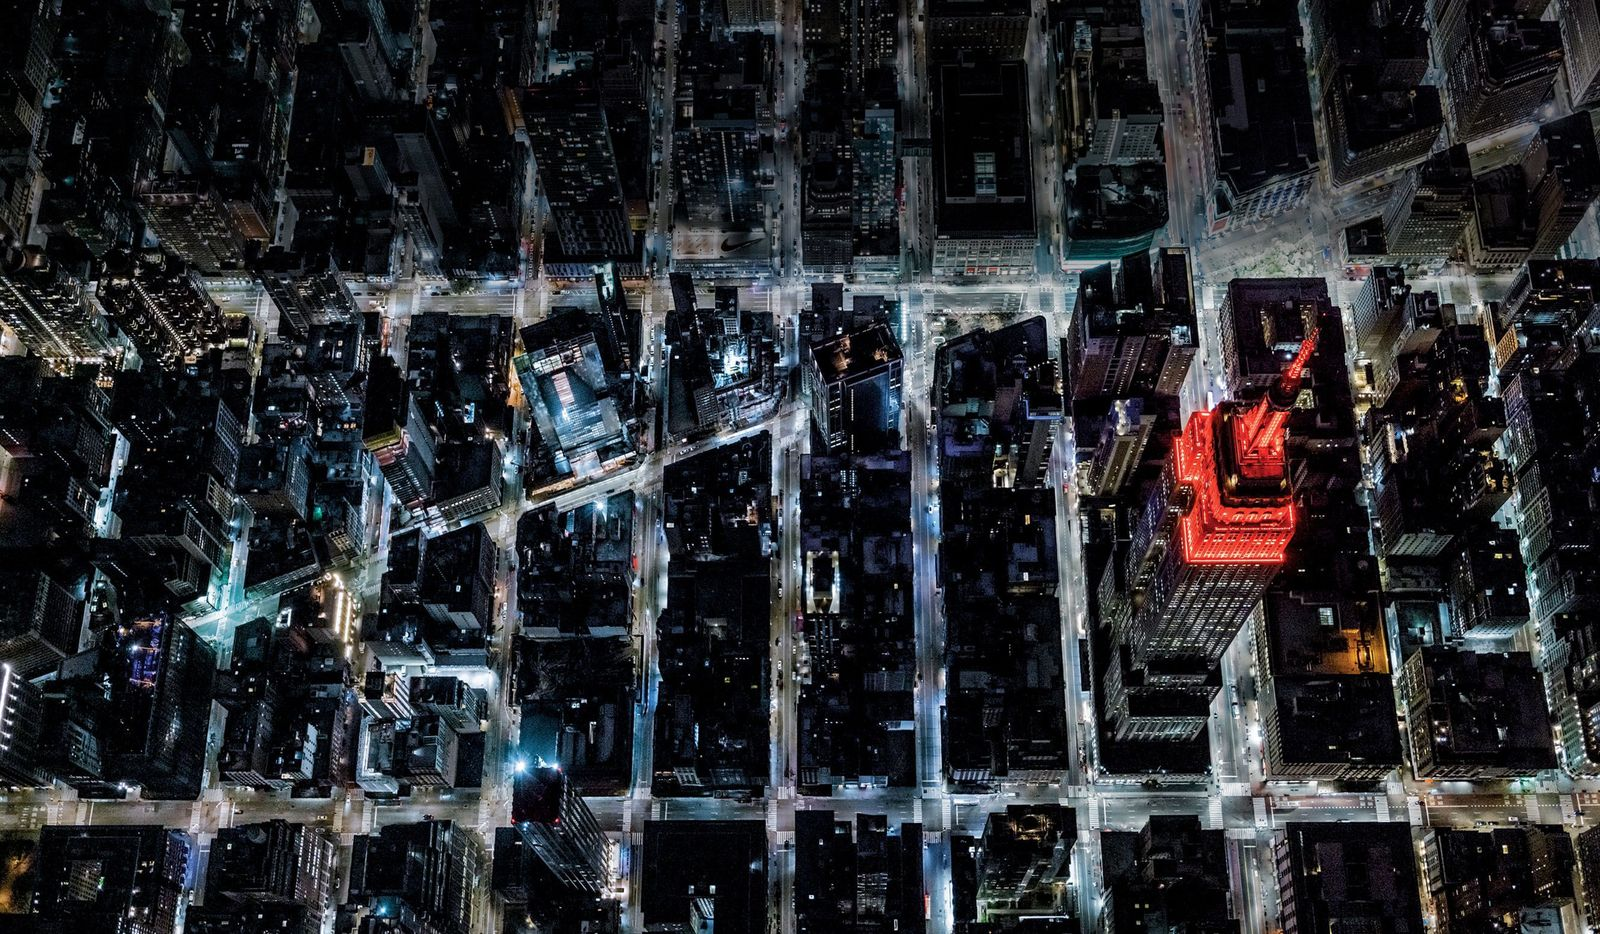 New York City's streets stand deserted under lockdown, April 2020. The Empire State Building is lit ...